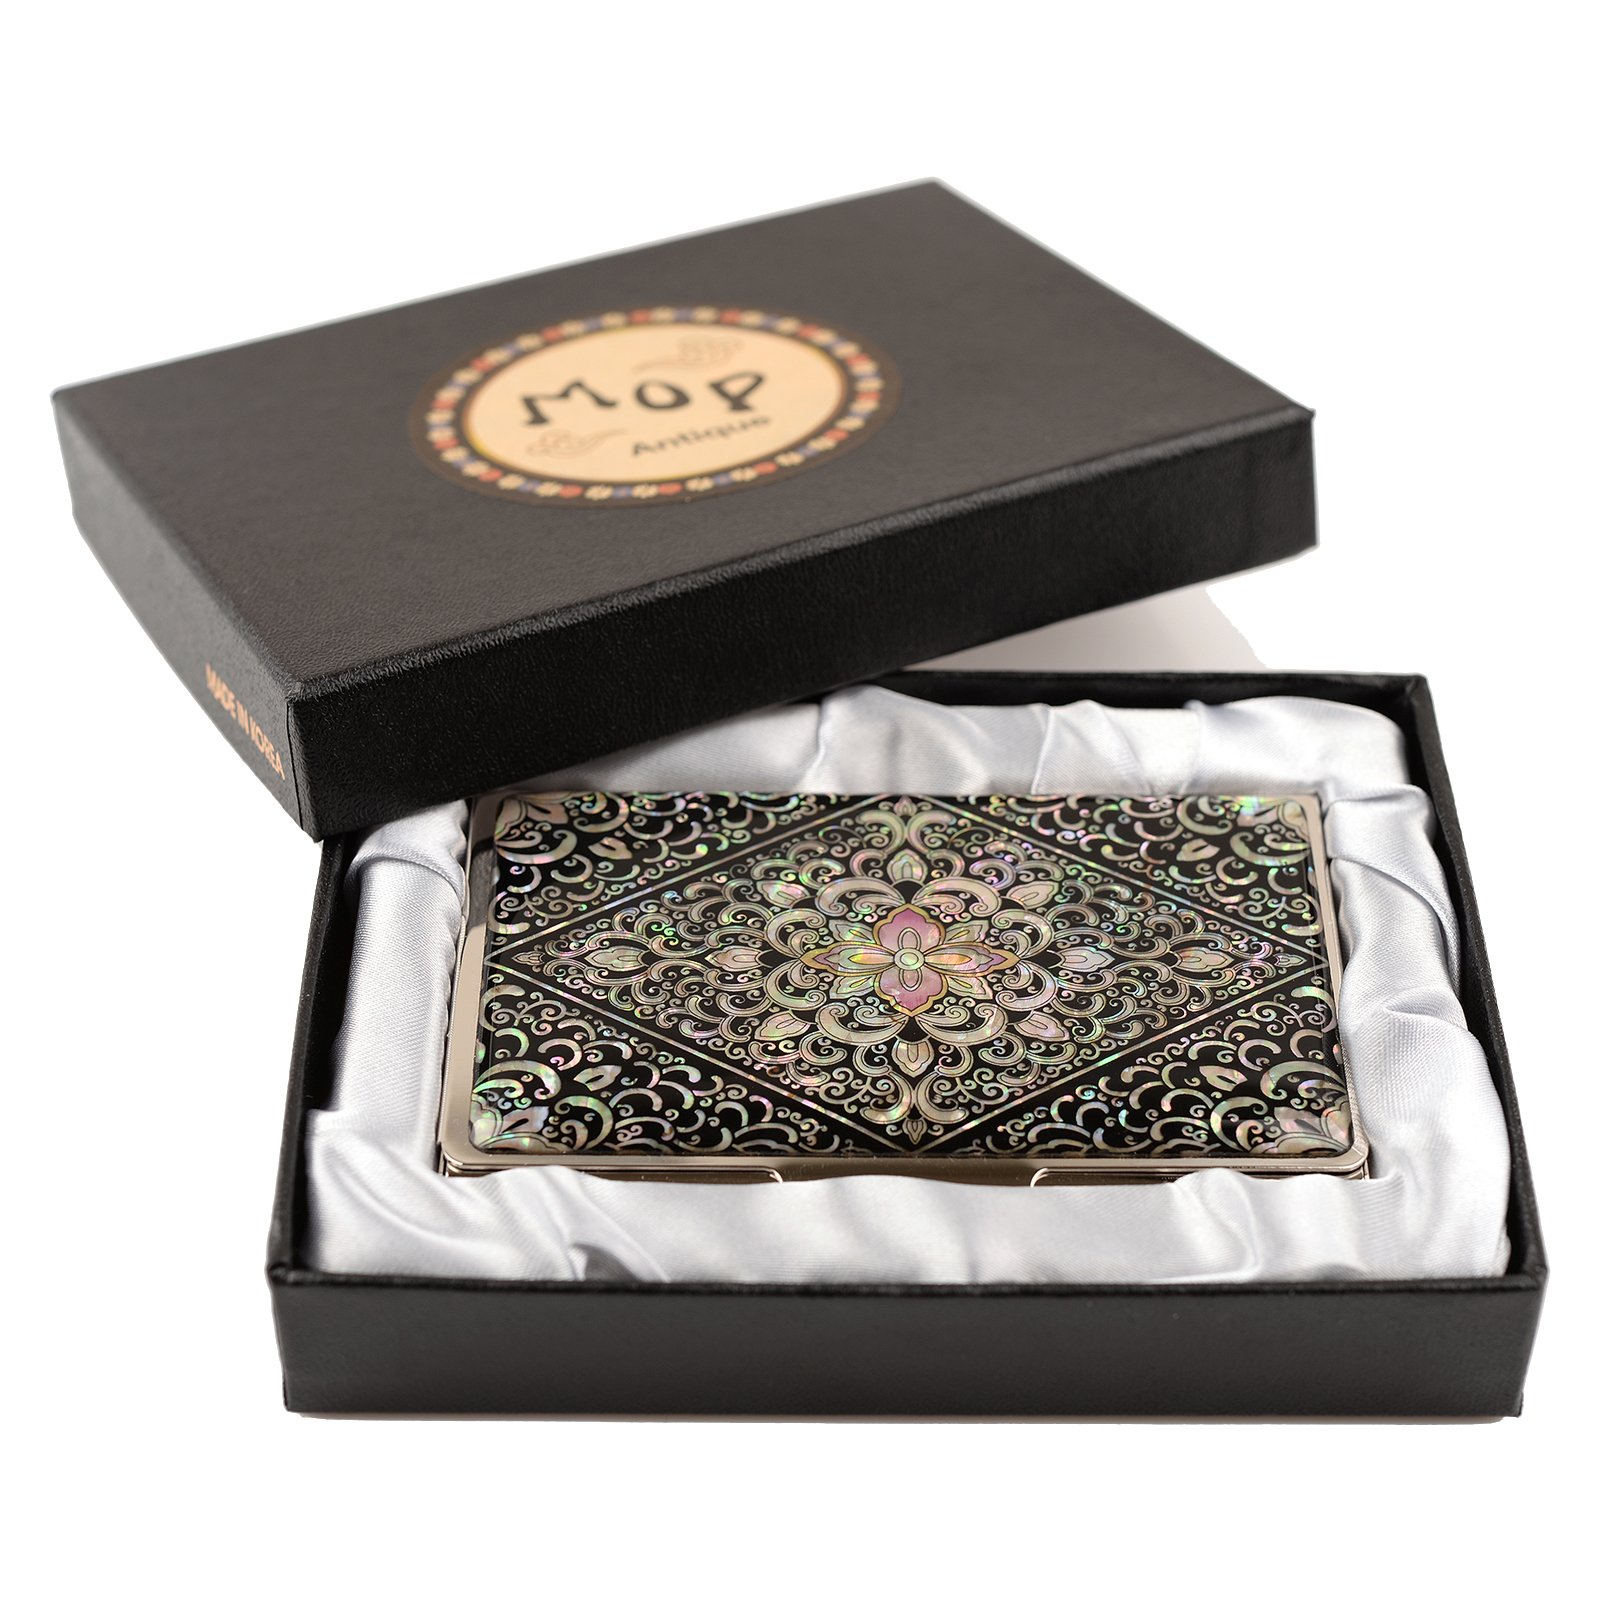 business name card holder stainless steel case Mother of Pearl Art Arabesque by MOP antique (Image #6)